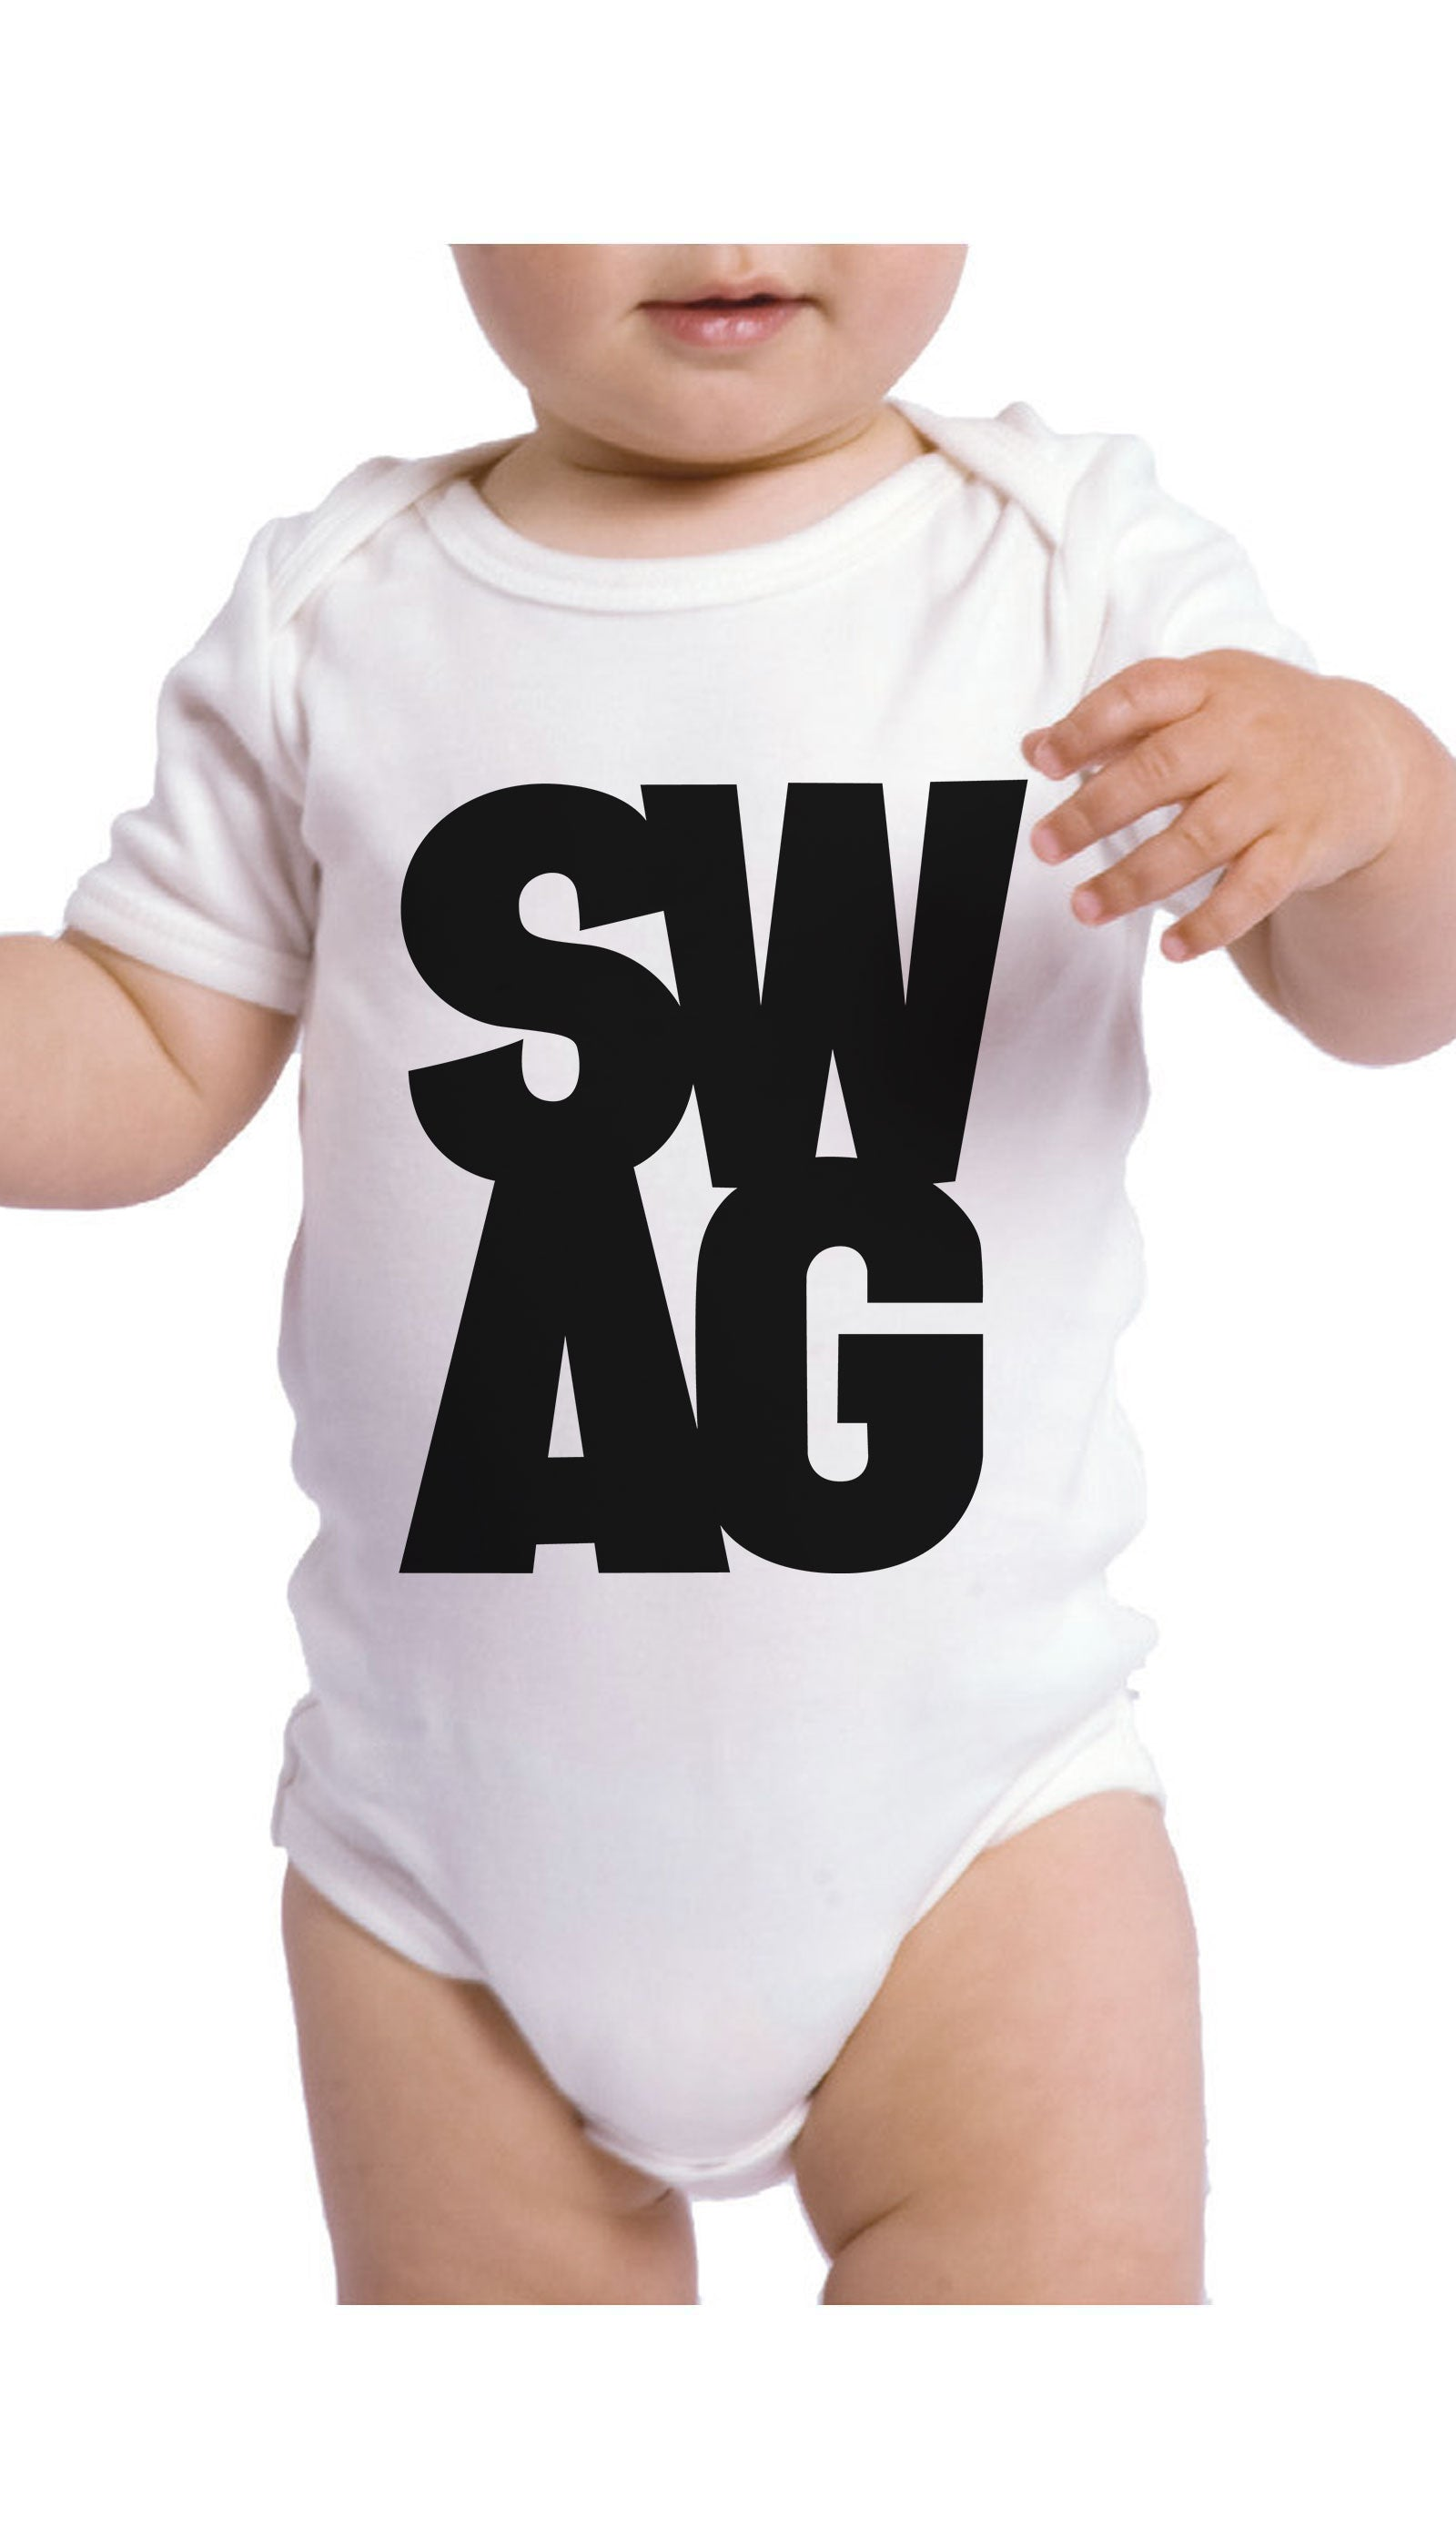 Swag Infant Onesie